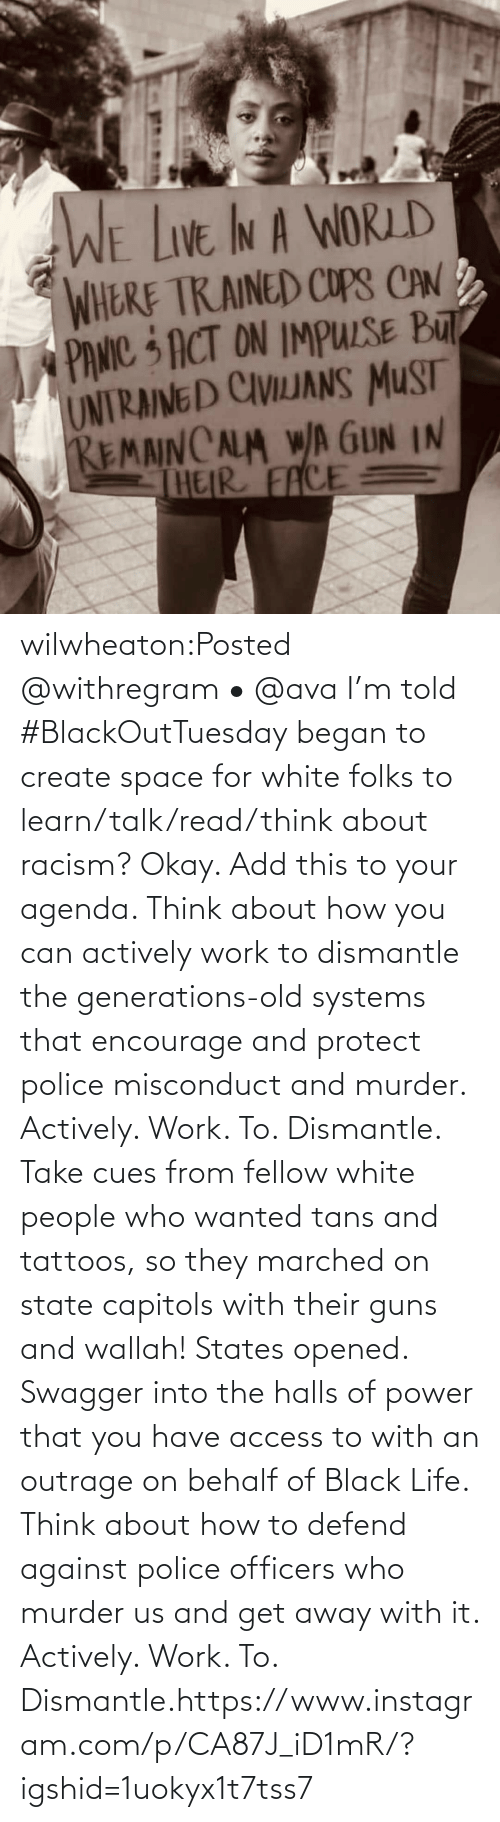 About: wilwheaton:Posted @withregram • @ava I'm told #BlackOutTuesday began to create space for white folks to learn/talk/read/think about racism? Okay. Add this to your agenda. Think about how you can actively work to dismantle the generations-old systems that encourage and protect police misconduct and murder. Actively. Work. To. Dismantle. Take cues from fellow white people who wanted tans and tattoos, so they marched on state capitols with their guns and wallah! States opened. Swagger into the halls of power that you have access to with an outrage on behalf of Black Life. Think about how to defend against police officers who murder us and get away with it. Actively. Work. To. Dismantle.https://www.instagram.com/p/CA87J_iD1mR/?igshid=1uokyx1t7tss7